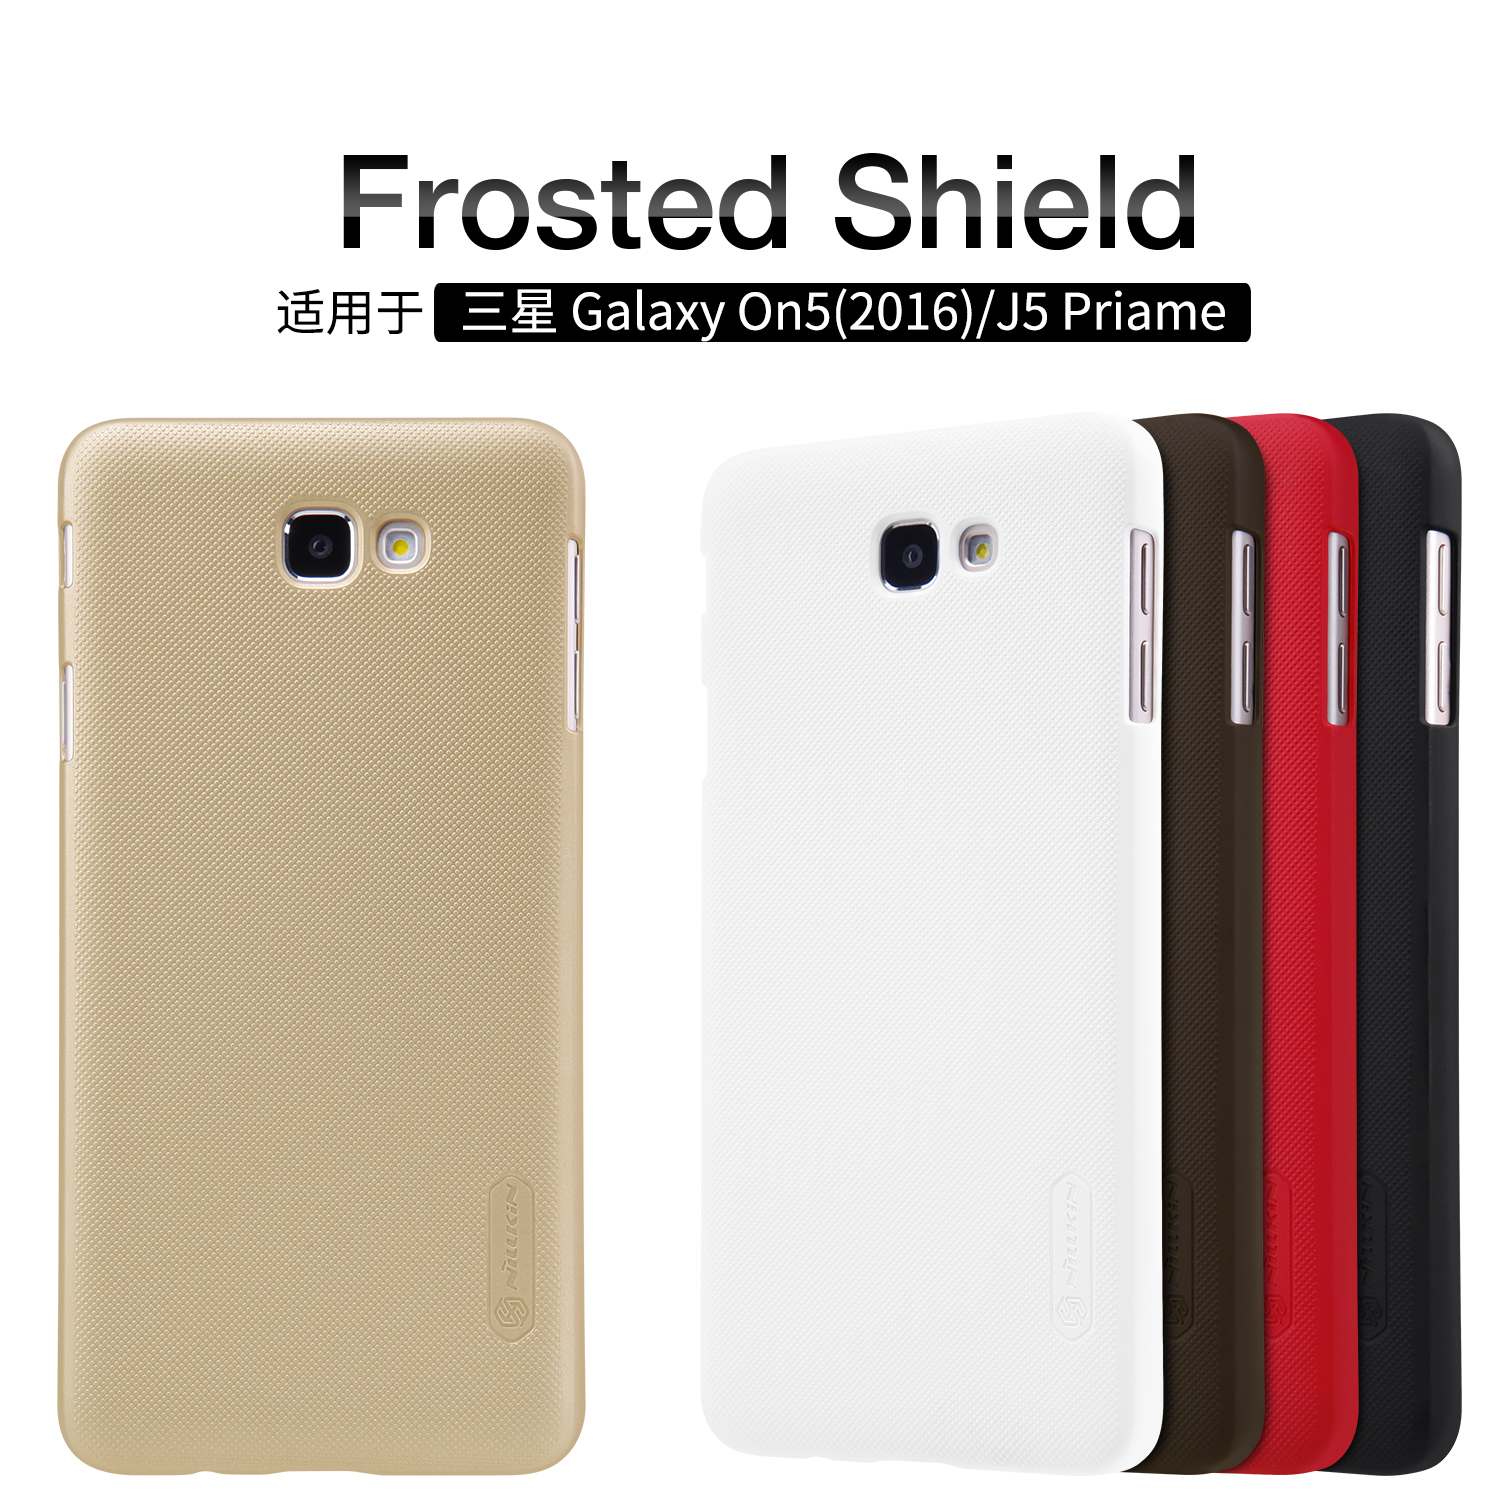 Nillkin Frosted Shield Case For Samsung Galaxy J5 prime G570F/On5 2016 Cover J7 Prime G610F/ On7 2016 Back Case with...  samsung on5 case | Galaxy On5 Poetic Case Review (HD) Nillkin Frosted Shield font b Case b font For font b Samsung b font Galaxy J5